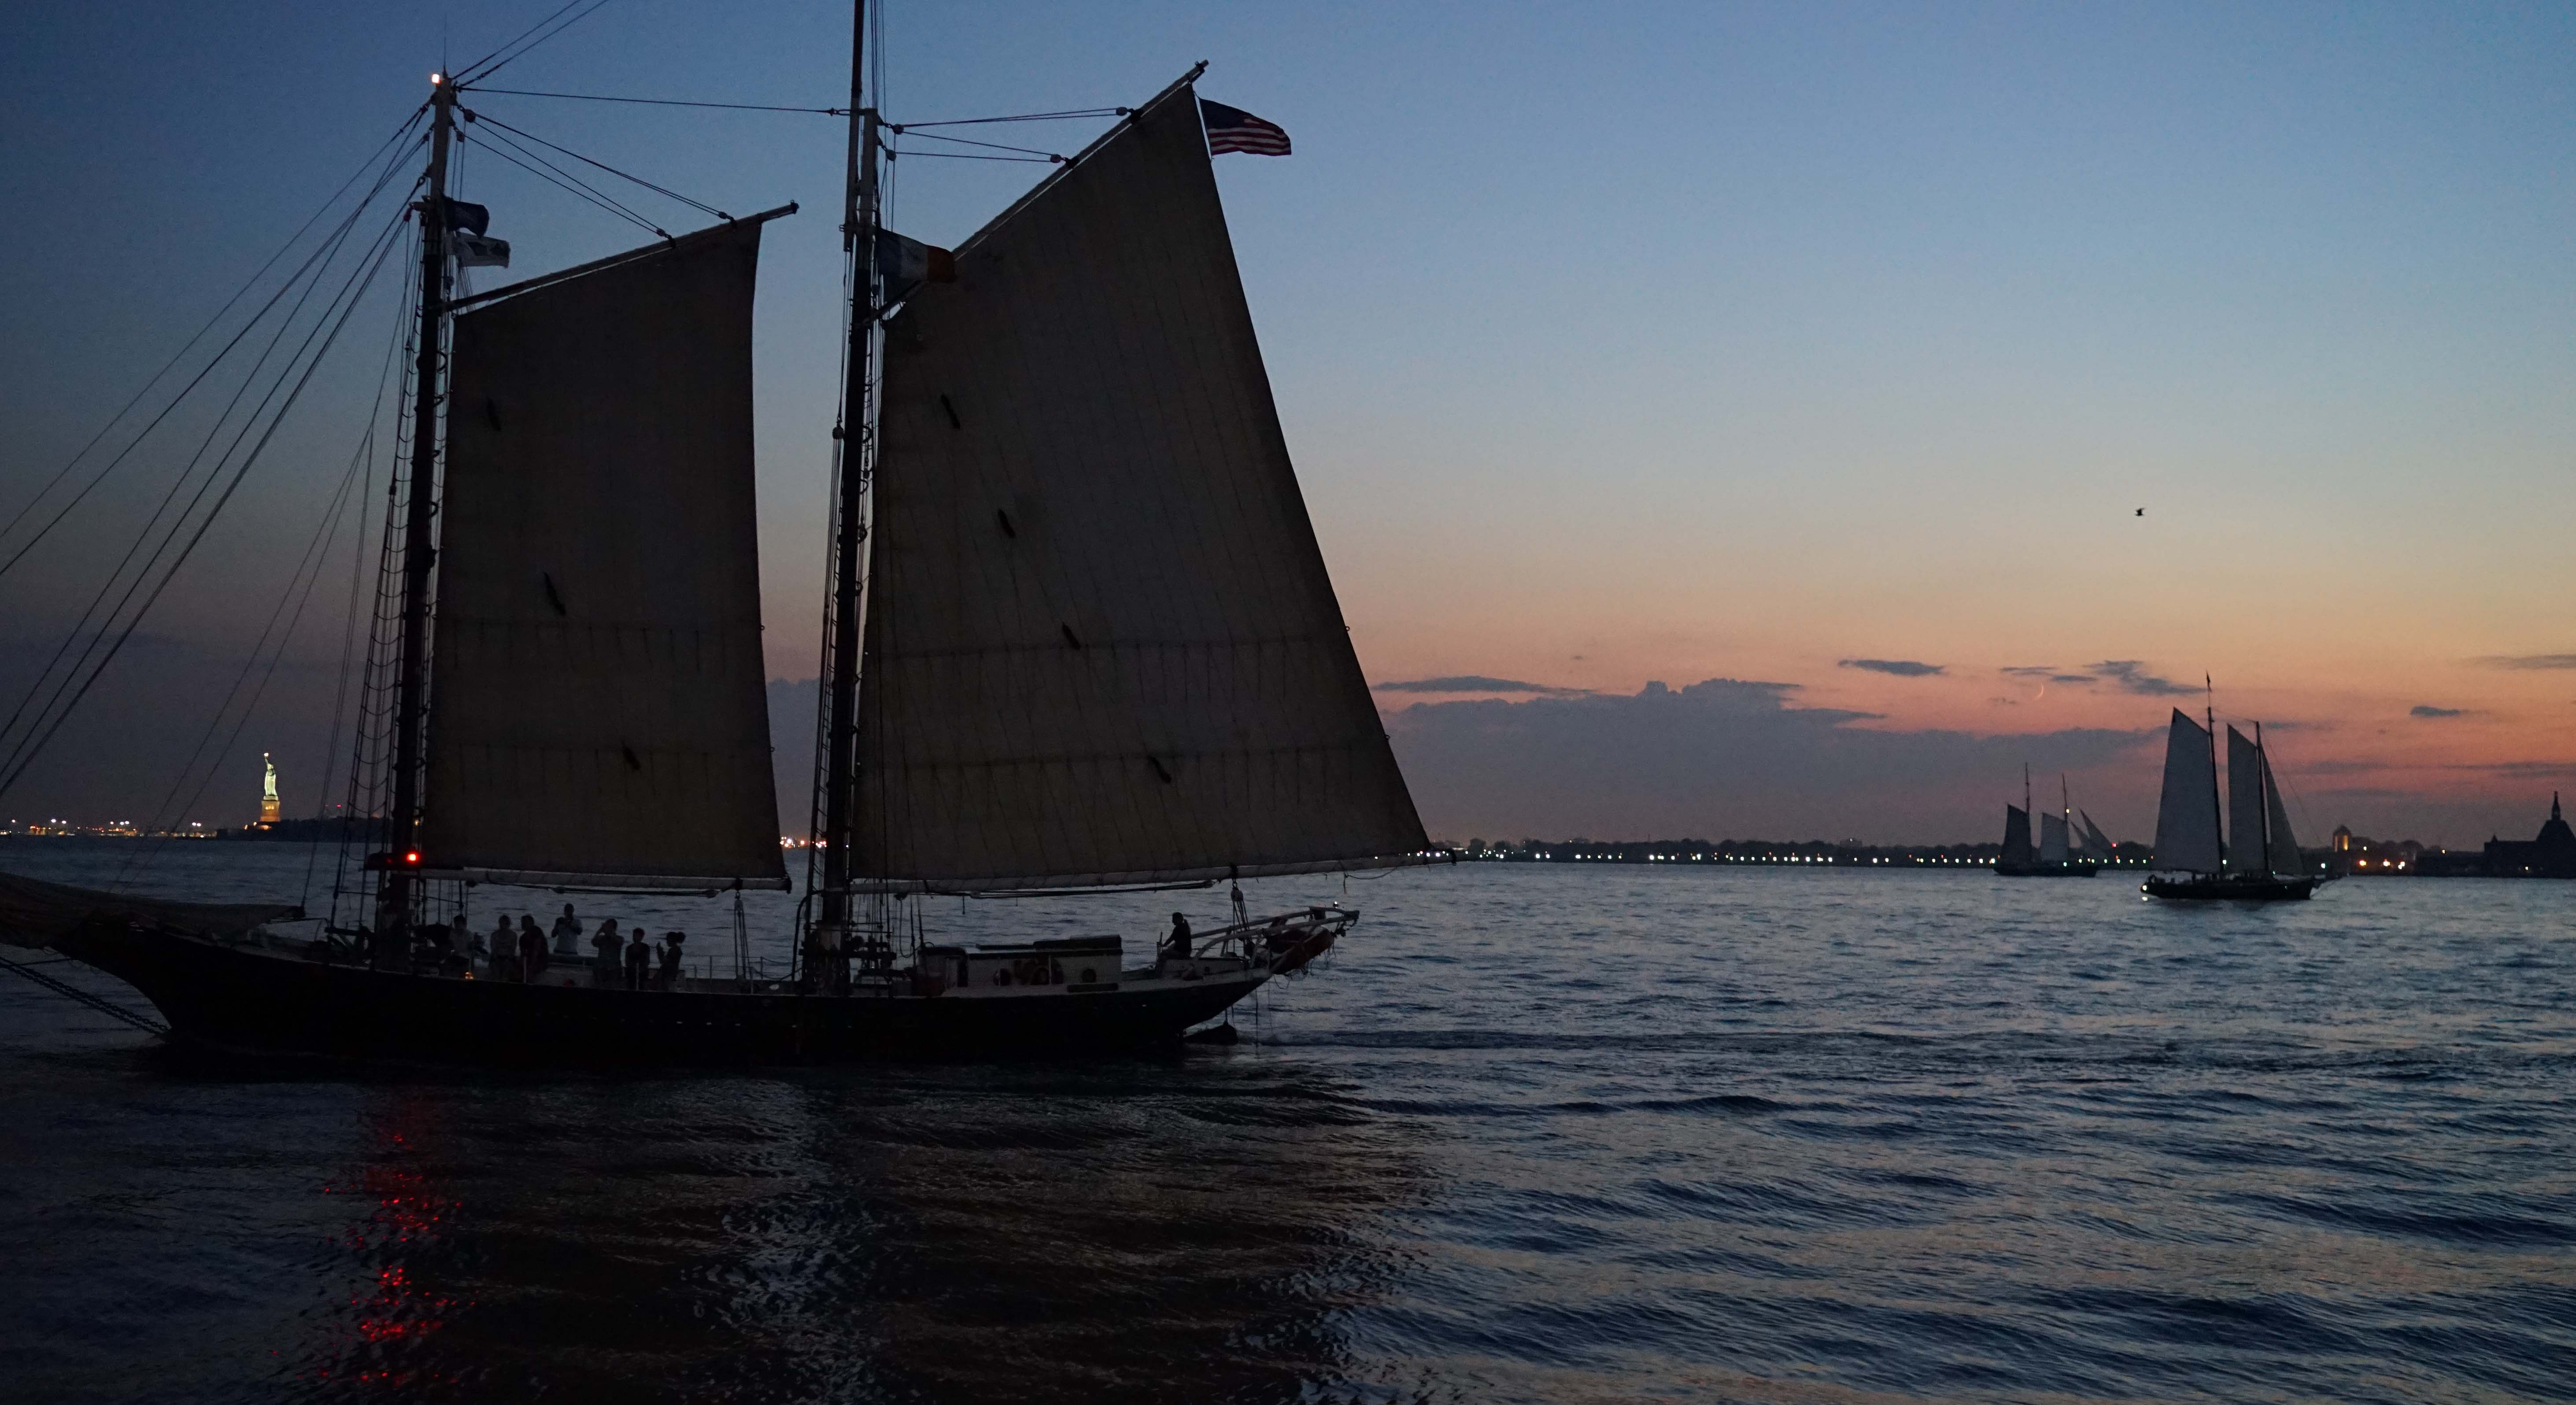 sunset clipper ships 8-16-2015 low